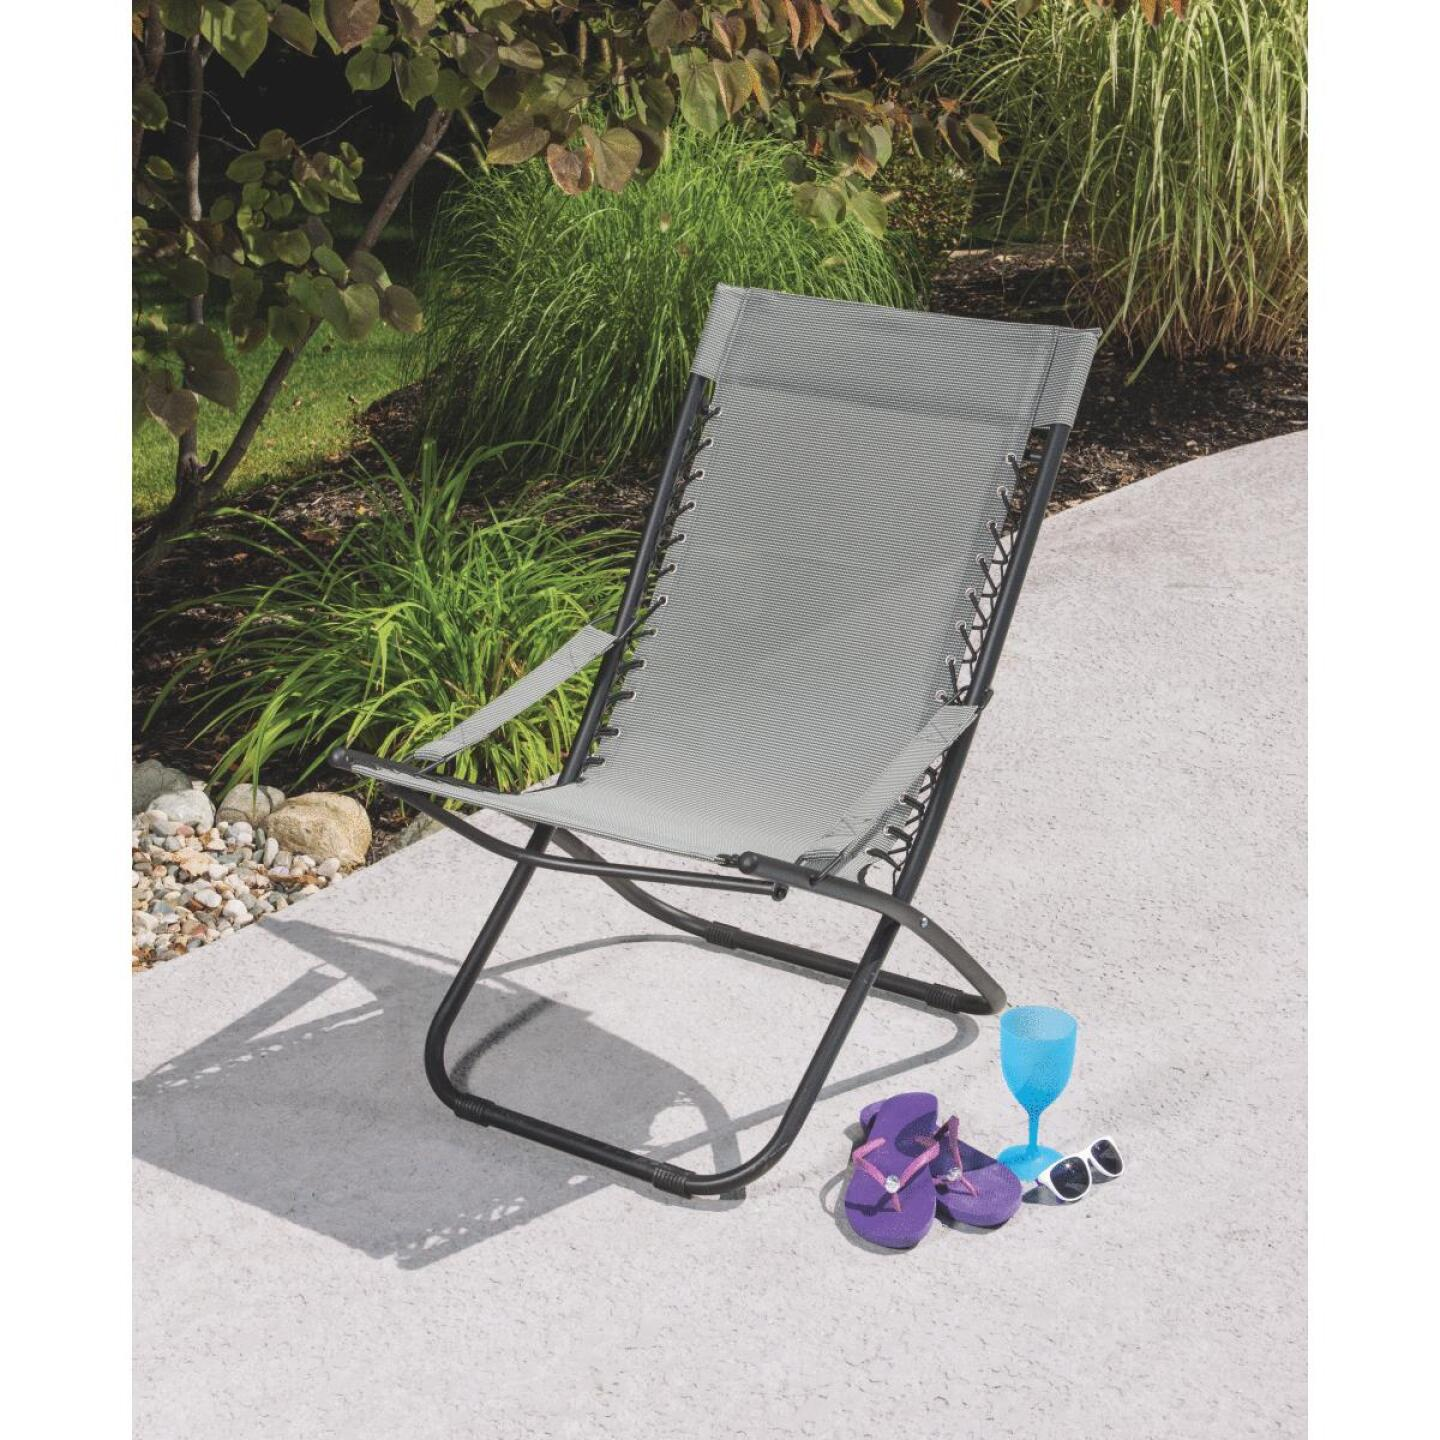 Outdoor Expressions Seville Gray Hammock Chair Image 4